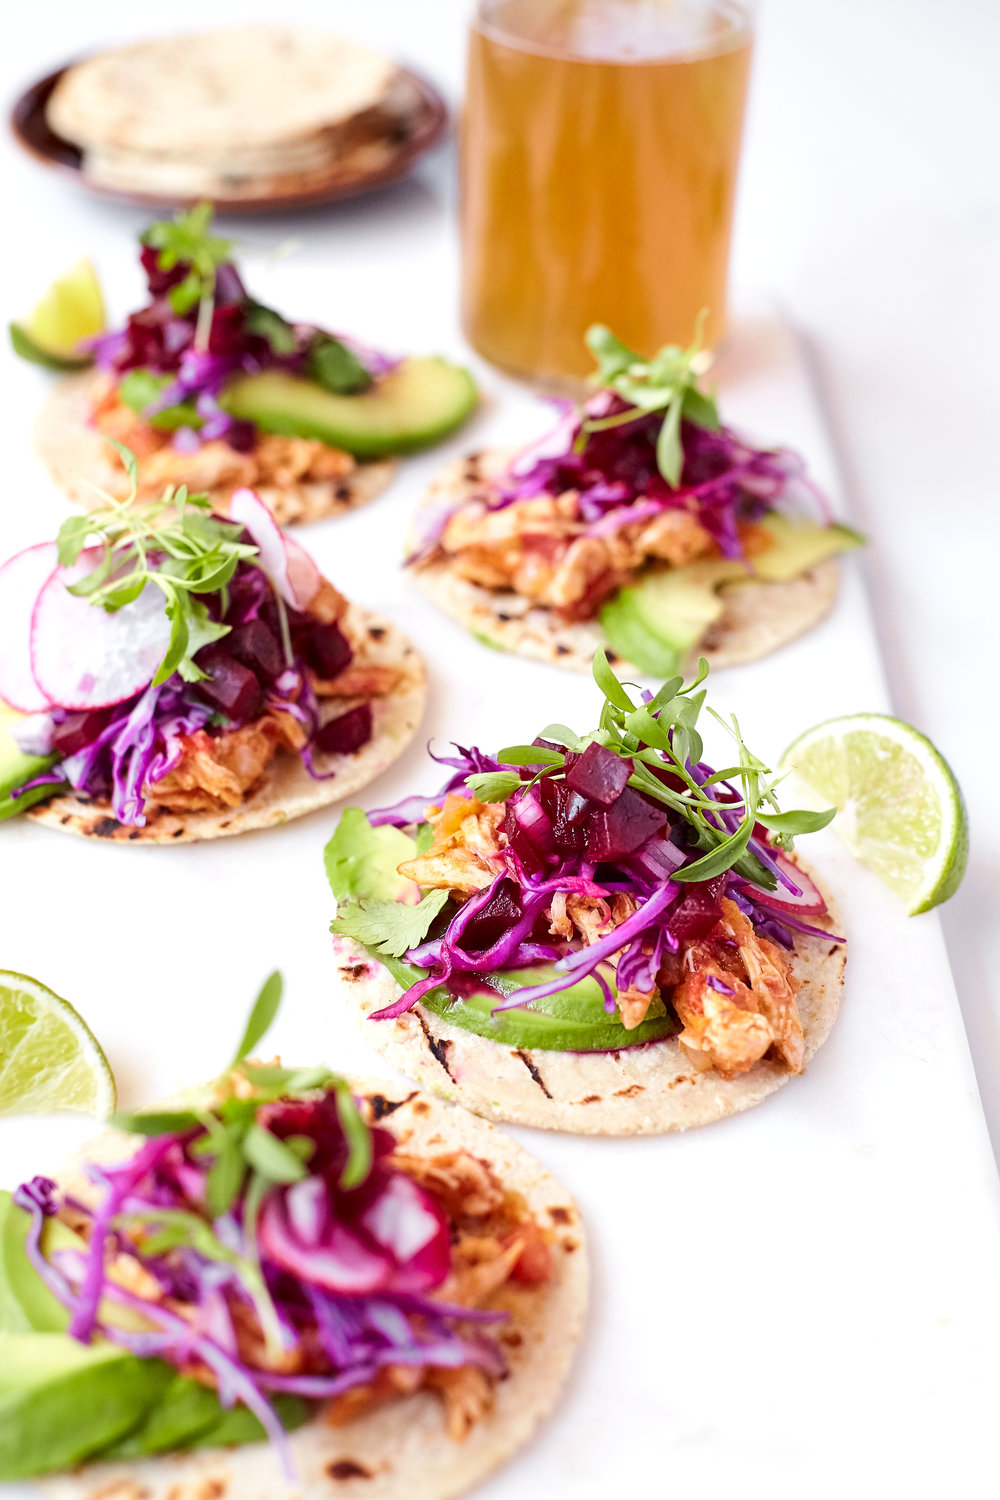 CHICKEN STREET TACOS WITH BEET SALSA